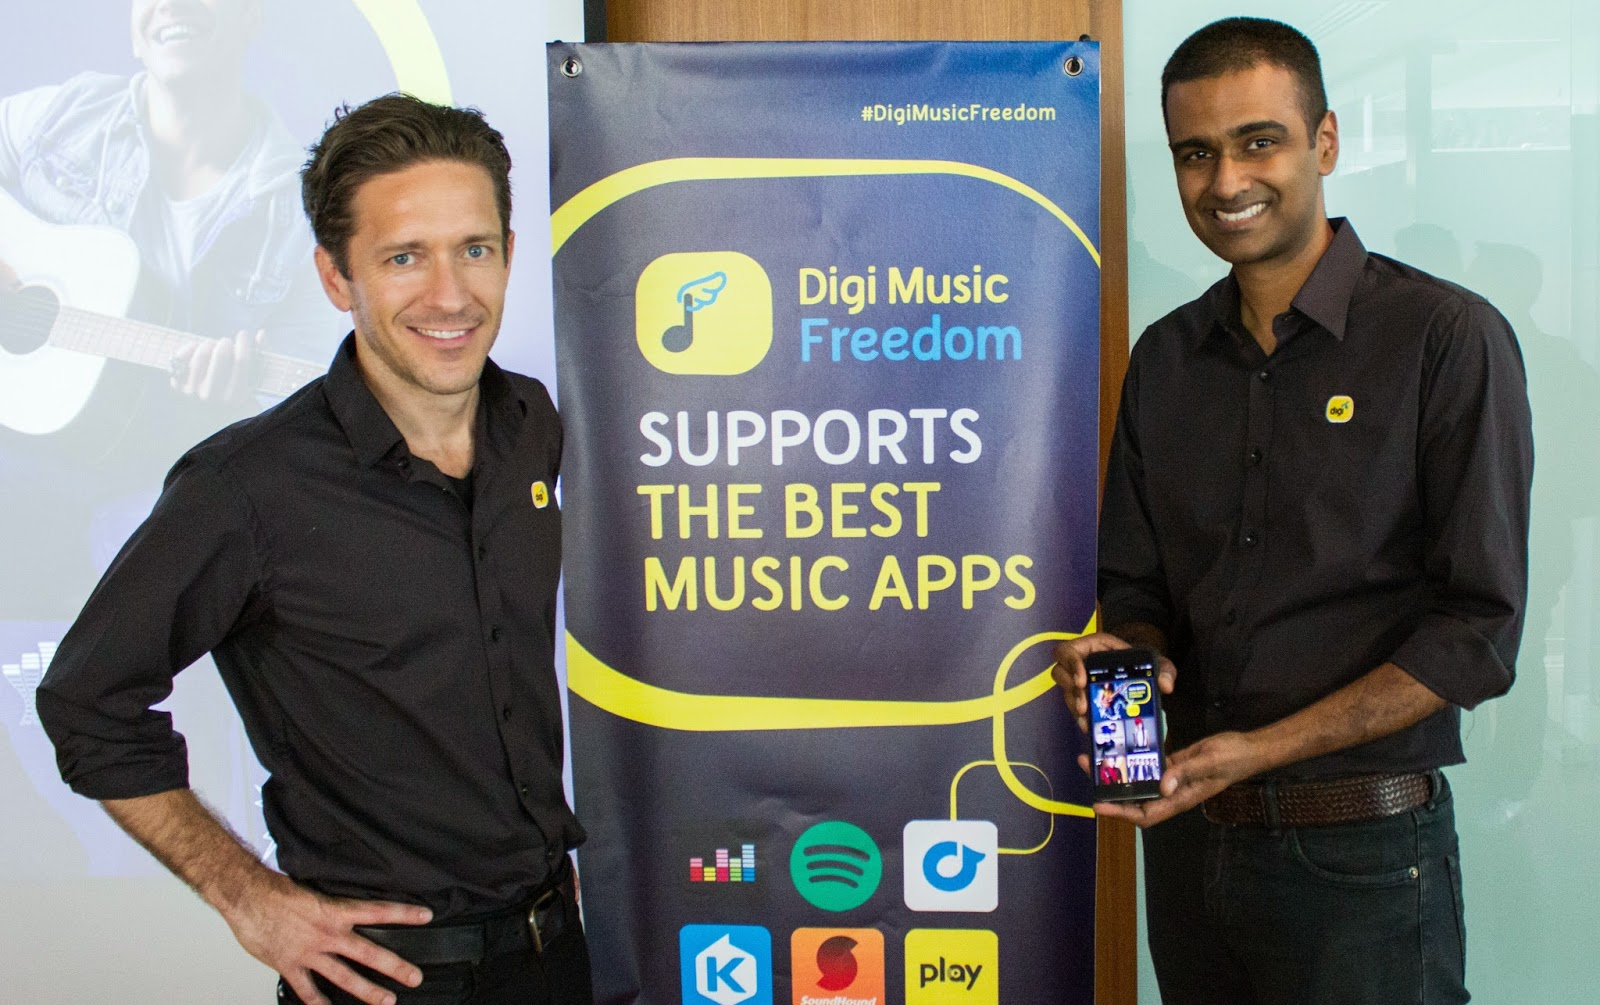 Unlimited music streaming with Digi Music Freedom